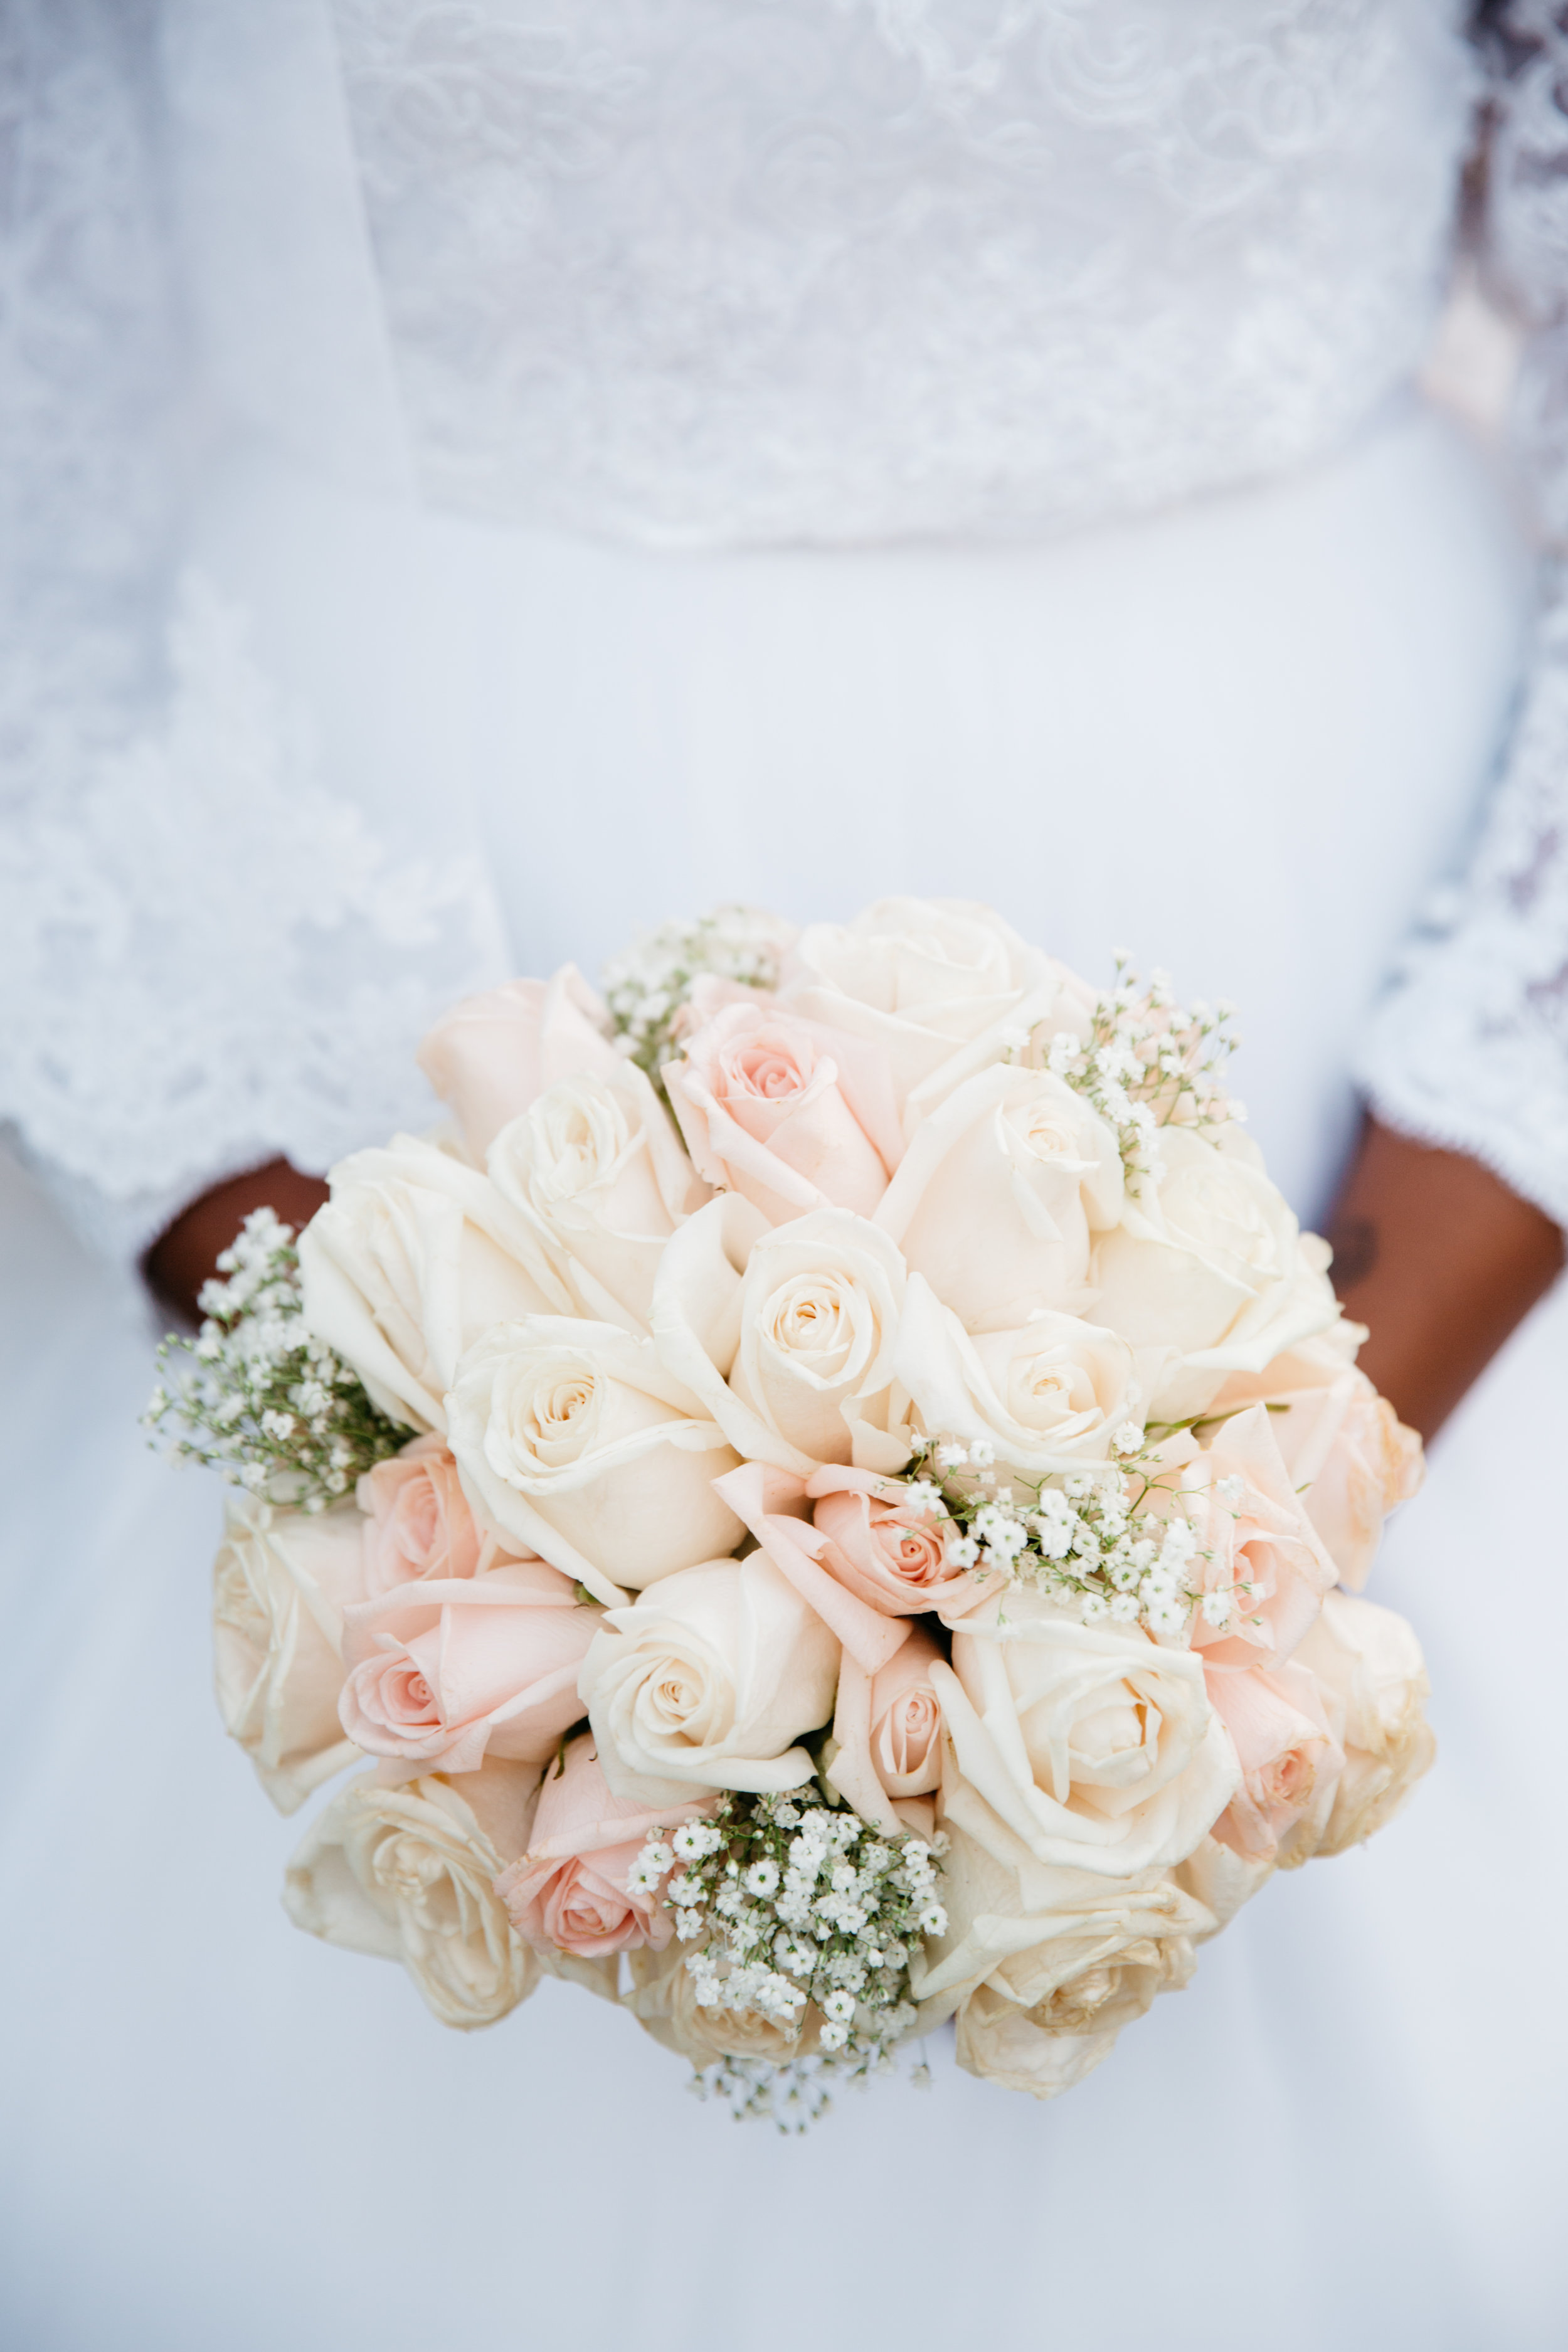 The Vineyard Wedding Jenna Bells and Laces Photography-60.jpg